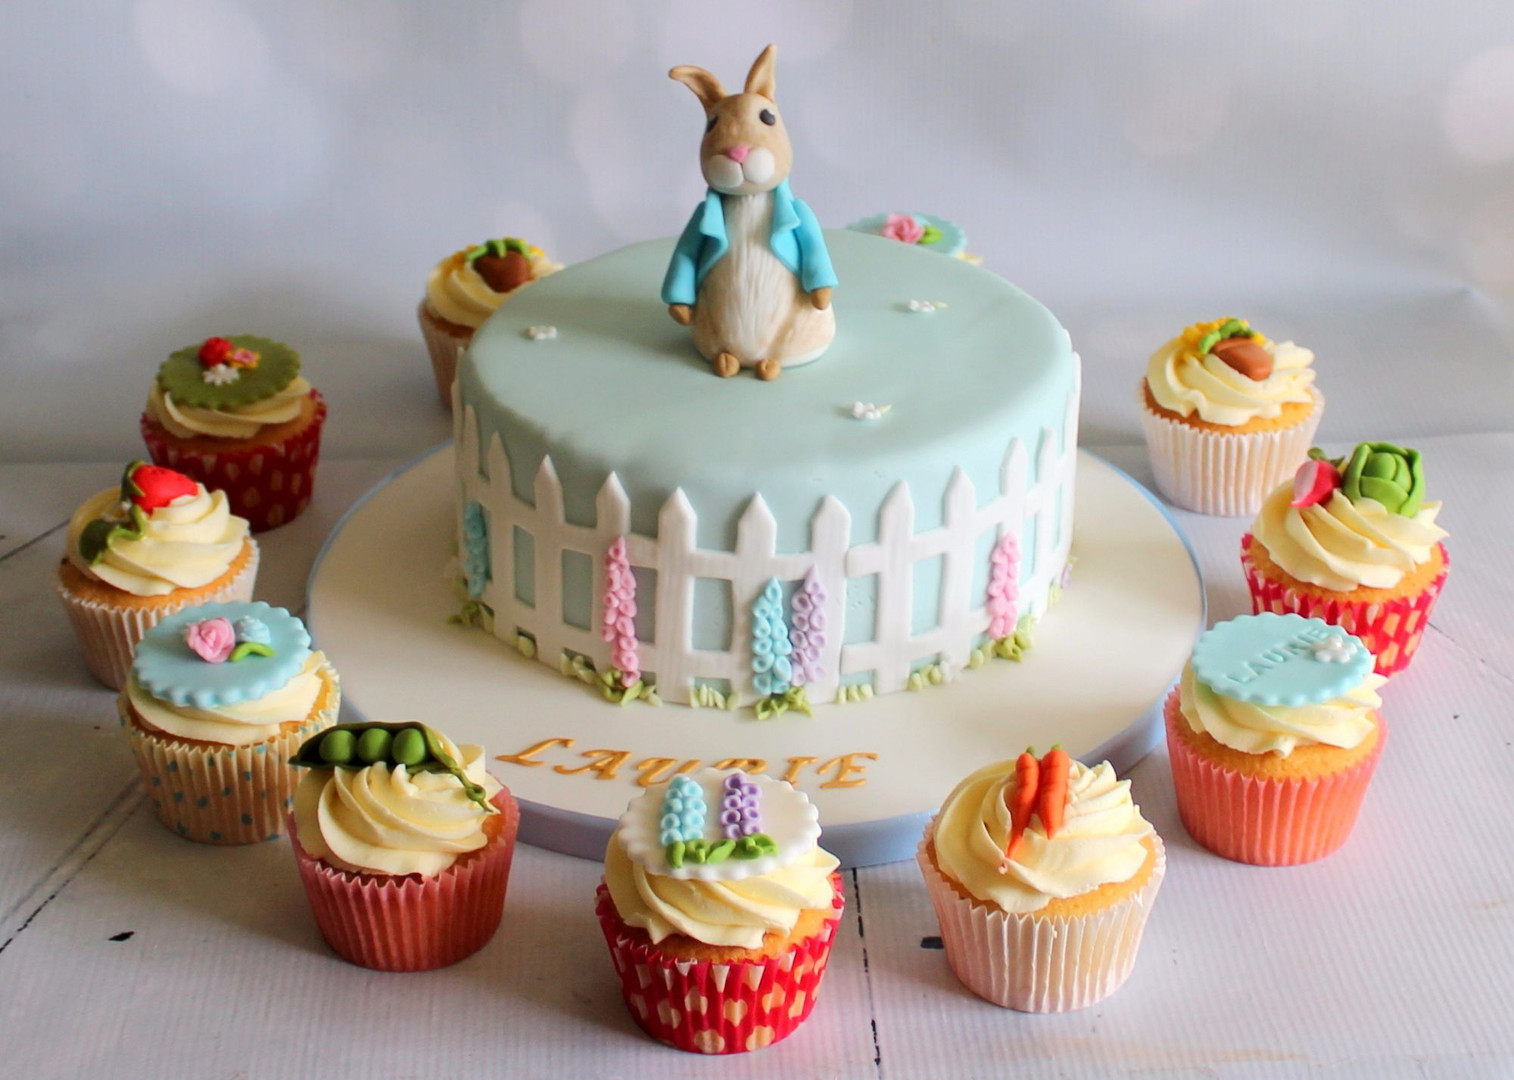 PETER RABBIT CUPCAKES.jpeg